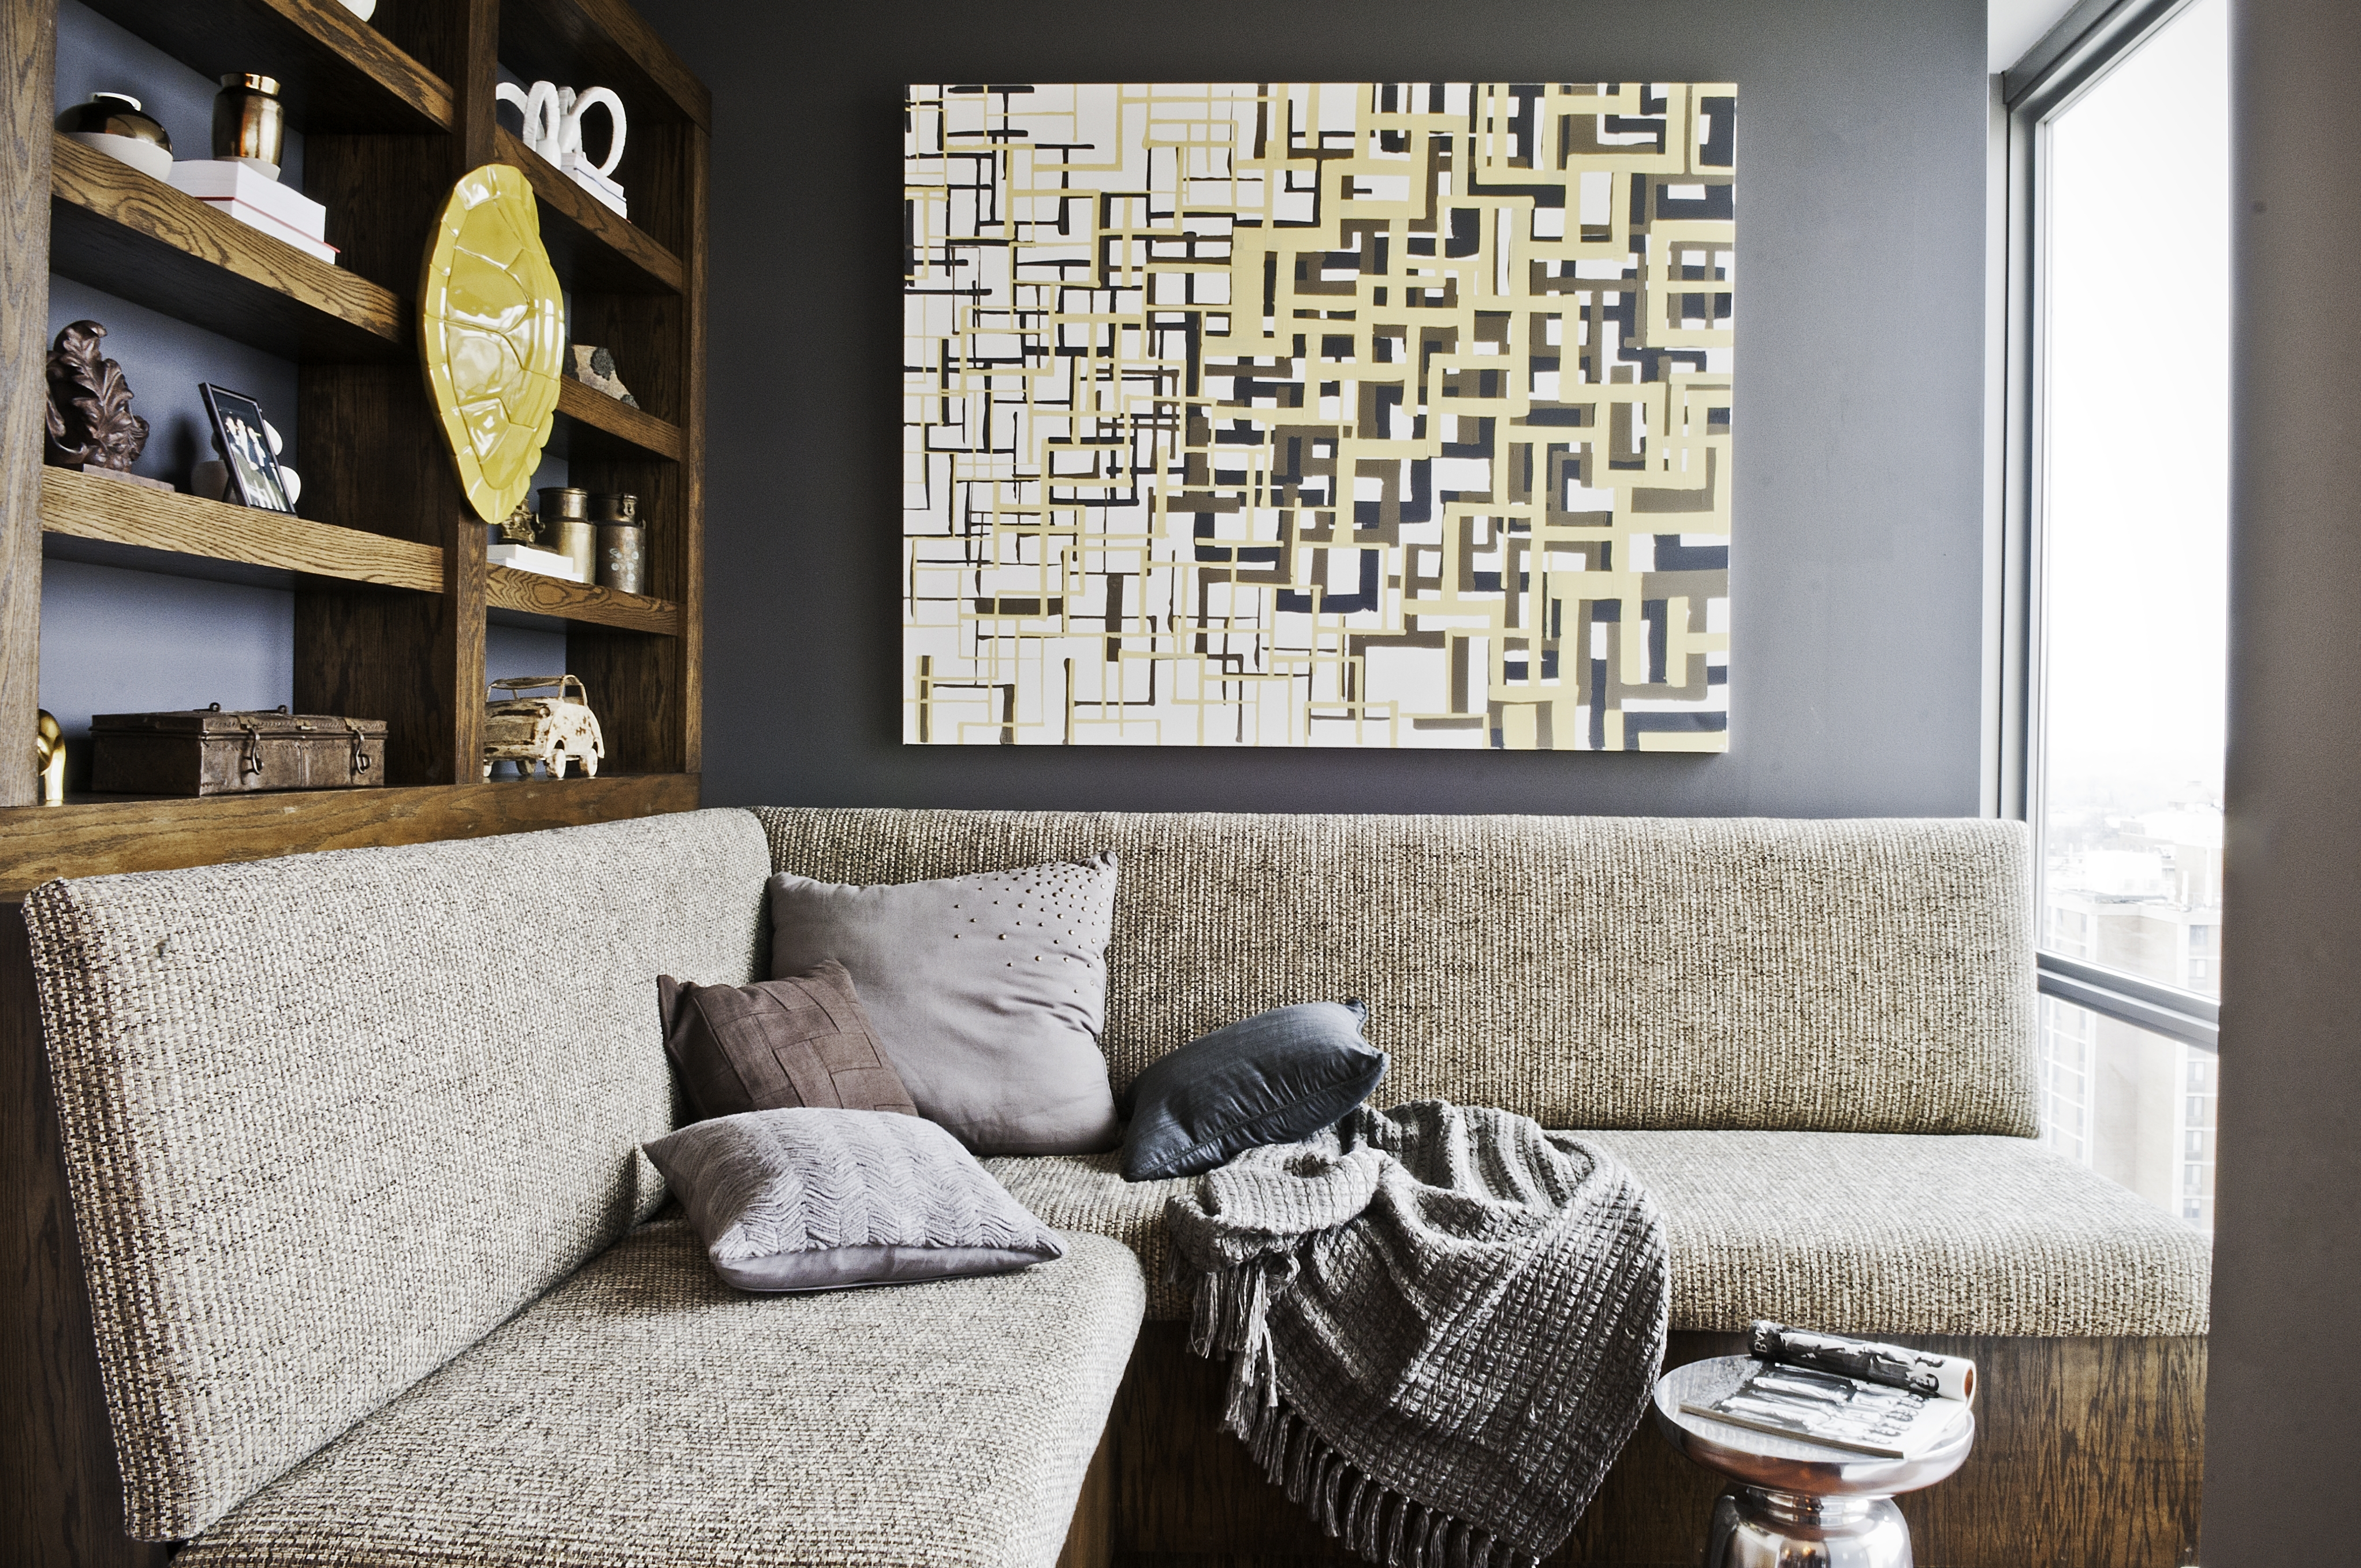 Latest Inspiring Interior Decors With Bachelor Pad Large Wall Art Also Intended For Bachelor Pad Wall Art (View 7 of 15)